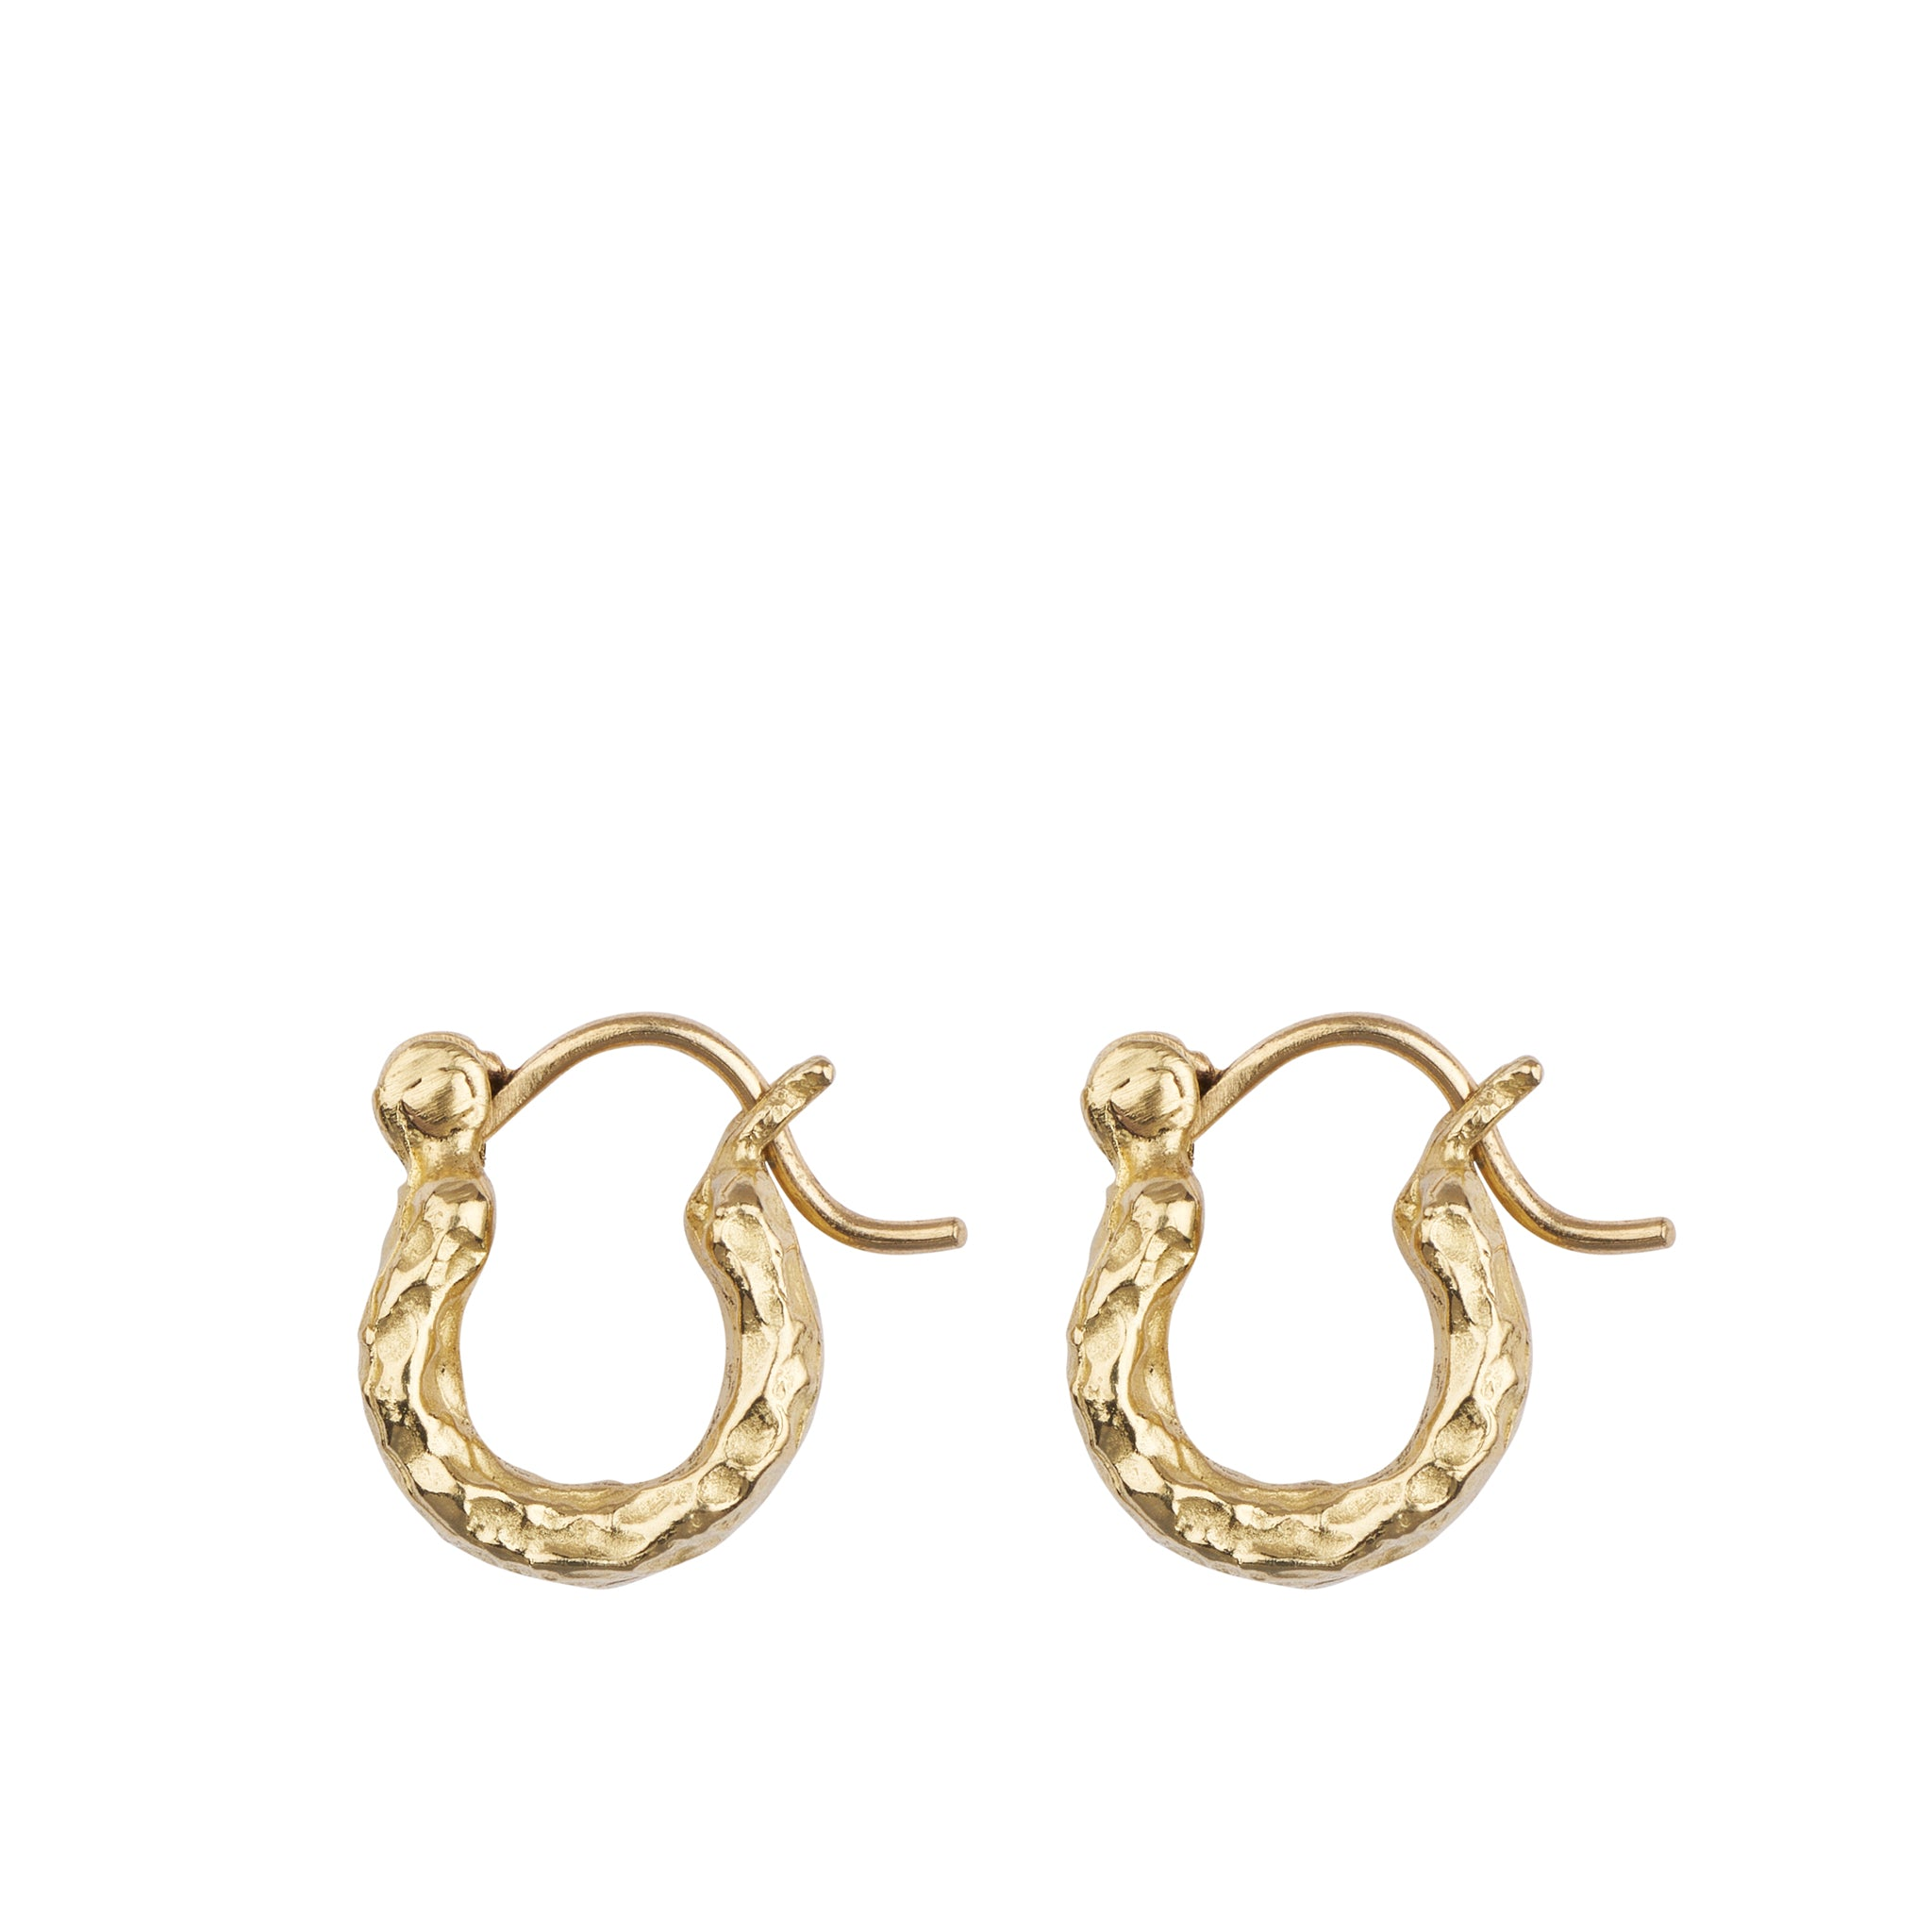 GOLD CHUBBY HOOPS SIDE VIEW | MINI HOOPS | ALICE WAESE | 14K GOLD | AETLA JEWELLERY EDINBURGH